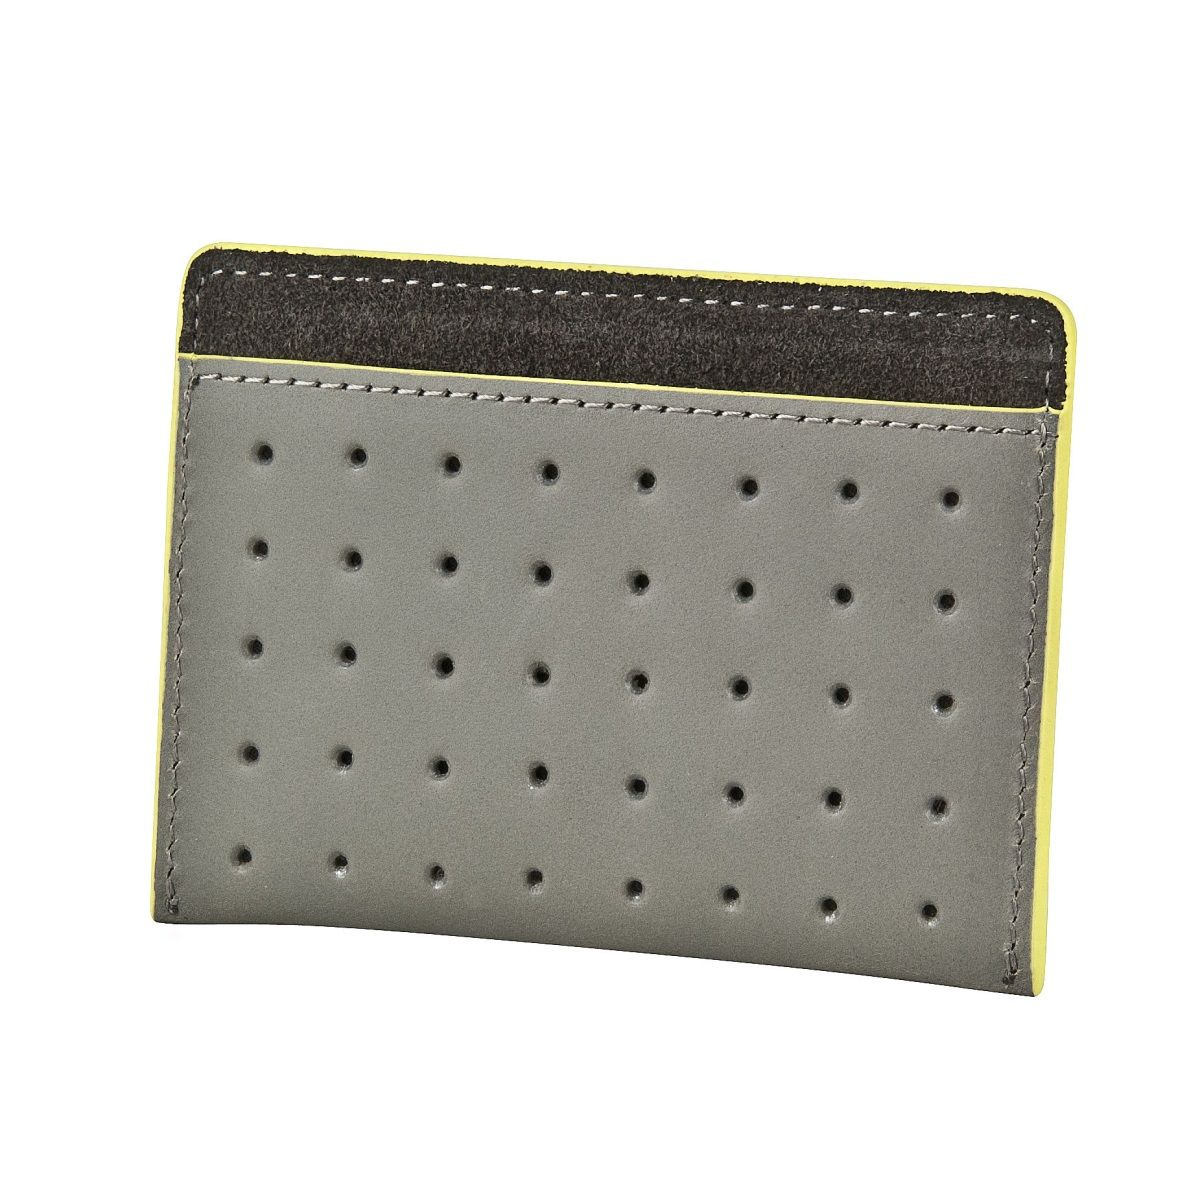 J.FOLD Flat Carrier Leather Wallet - Grey